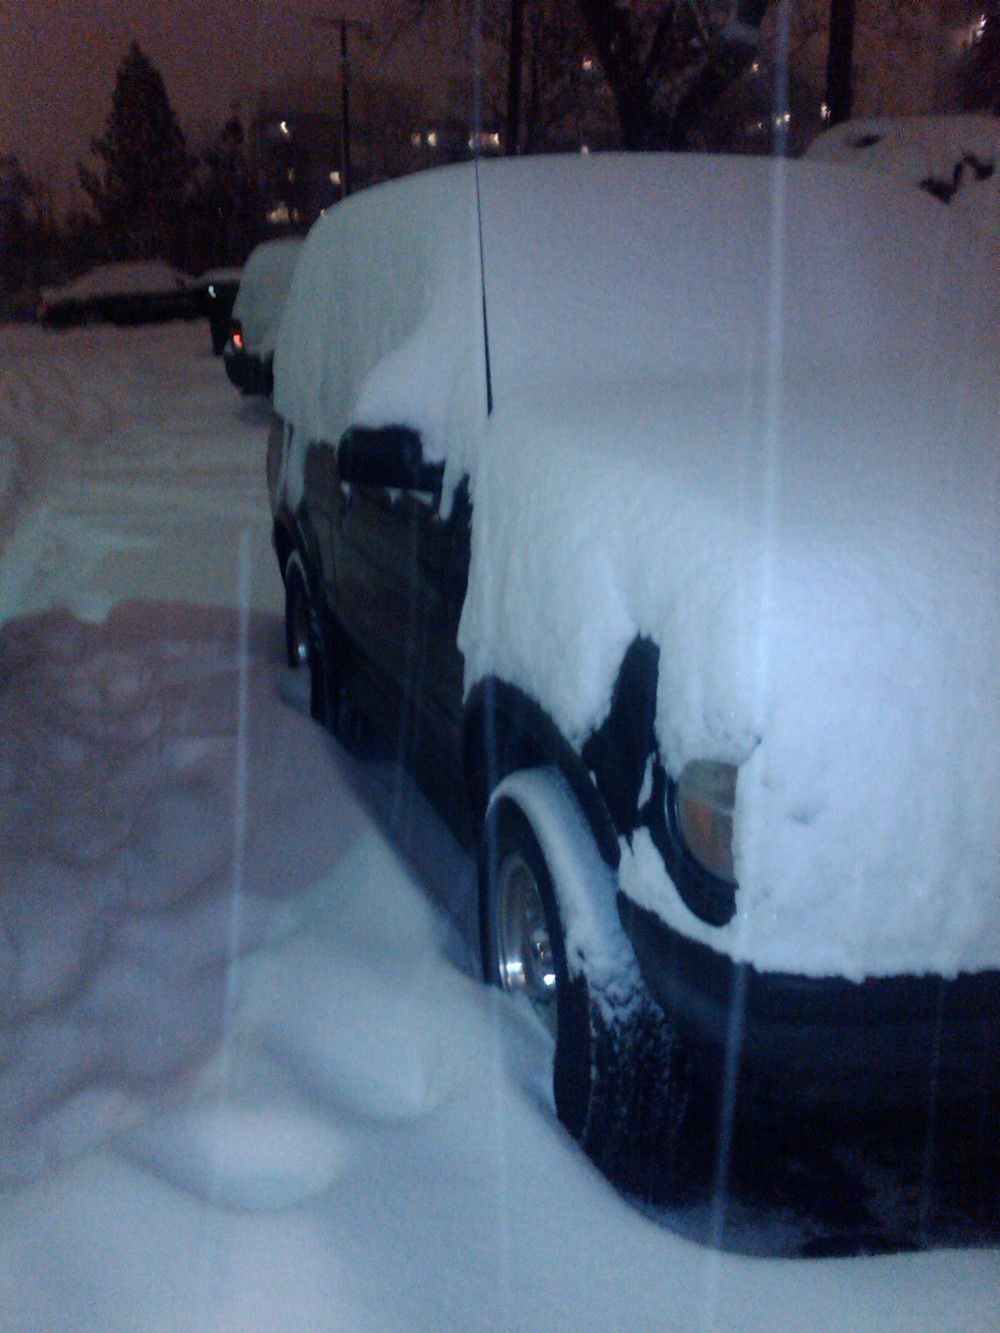 My Snow Covered Car